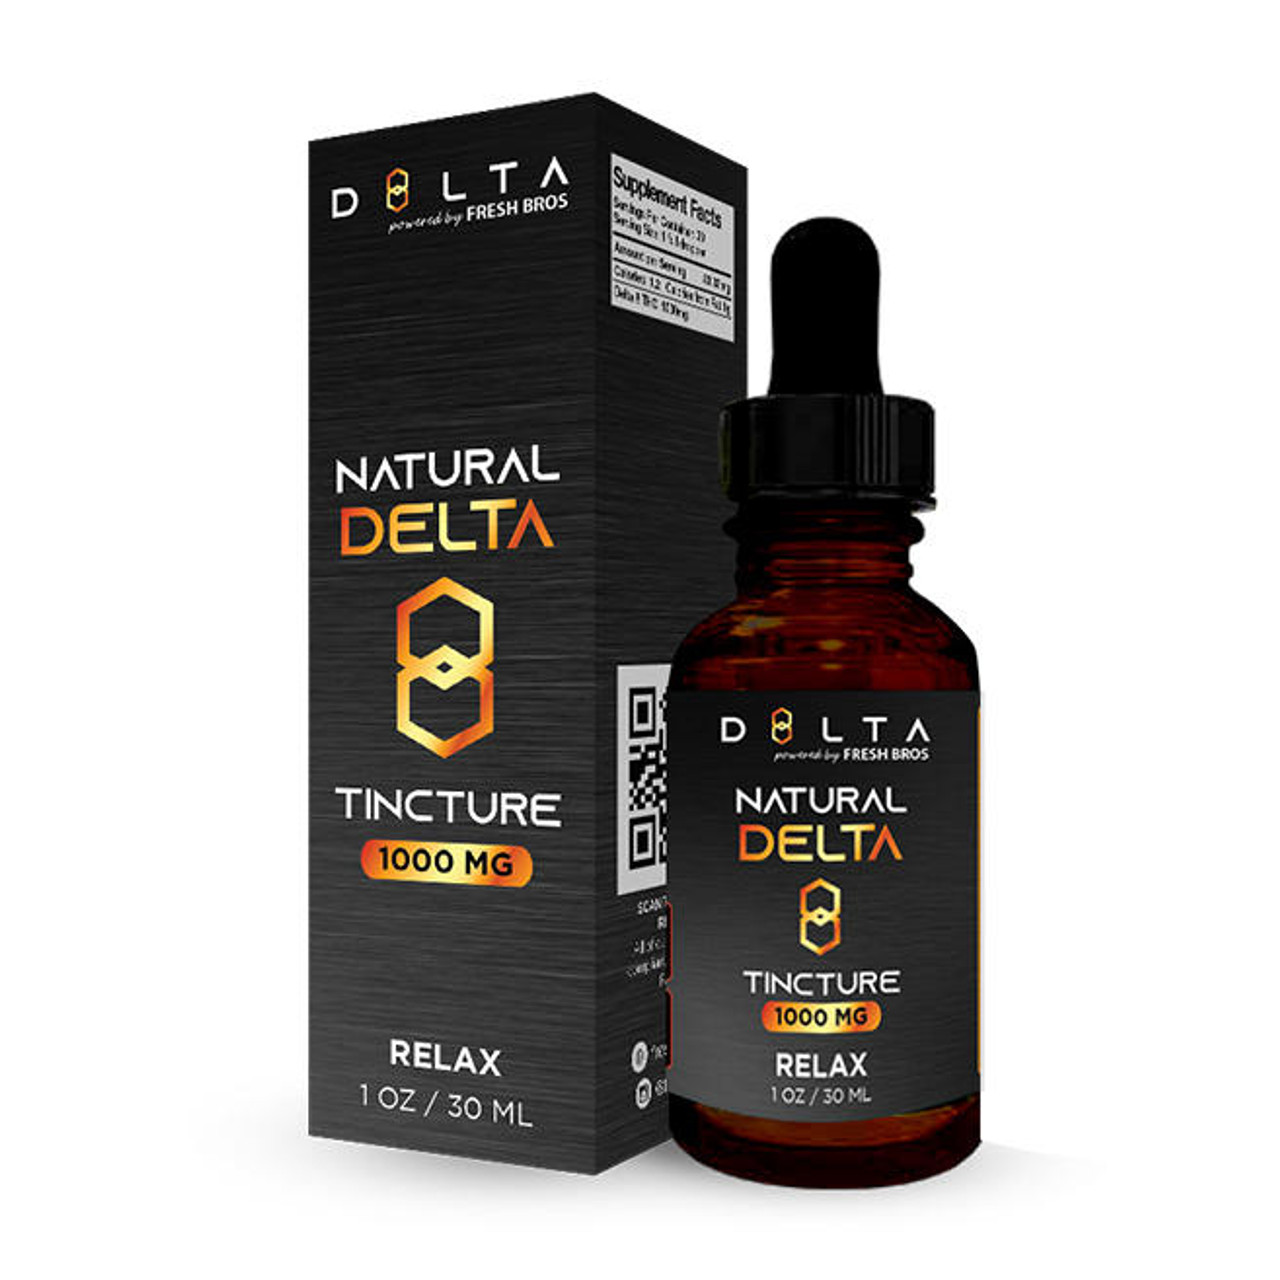 D8LTA Delta 8 Tincture - 1000mg THC Oil Delta 8 Tinctures for Relaxing